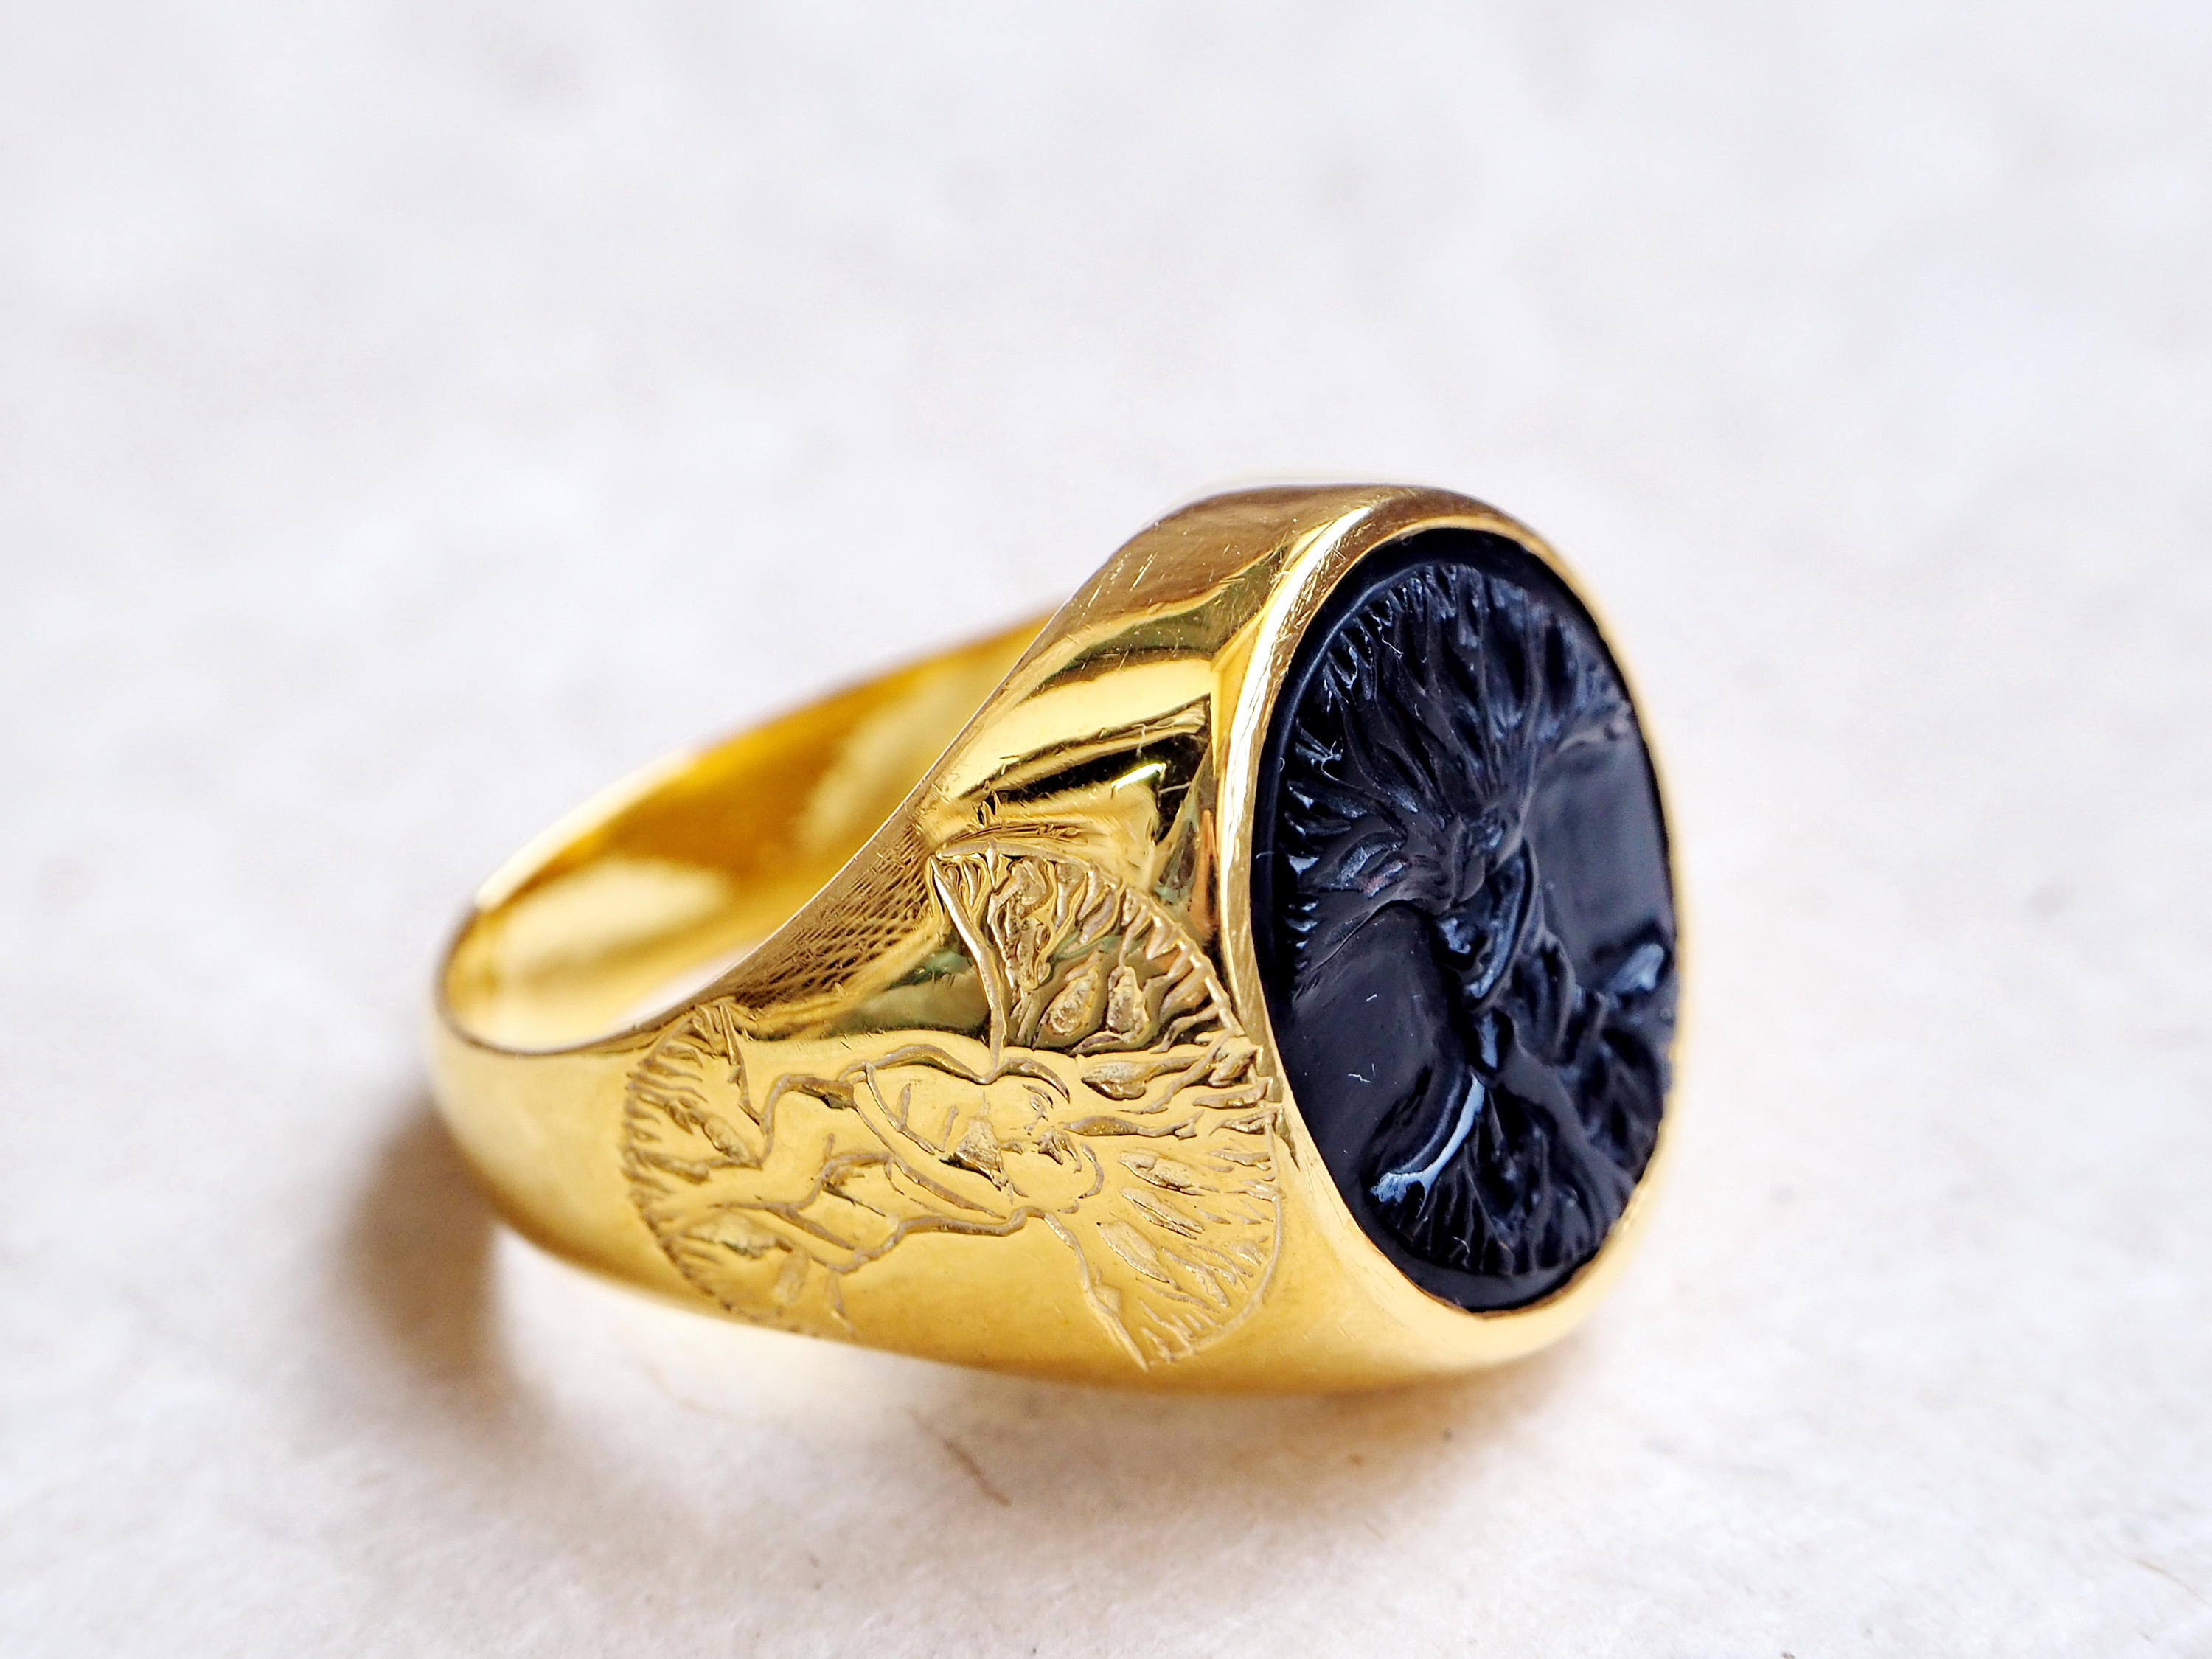 Tree Of Life Ring Black Onyx Handmade Regnas In Gold Plated Sterling Silver 925 The Regnas Collection